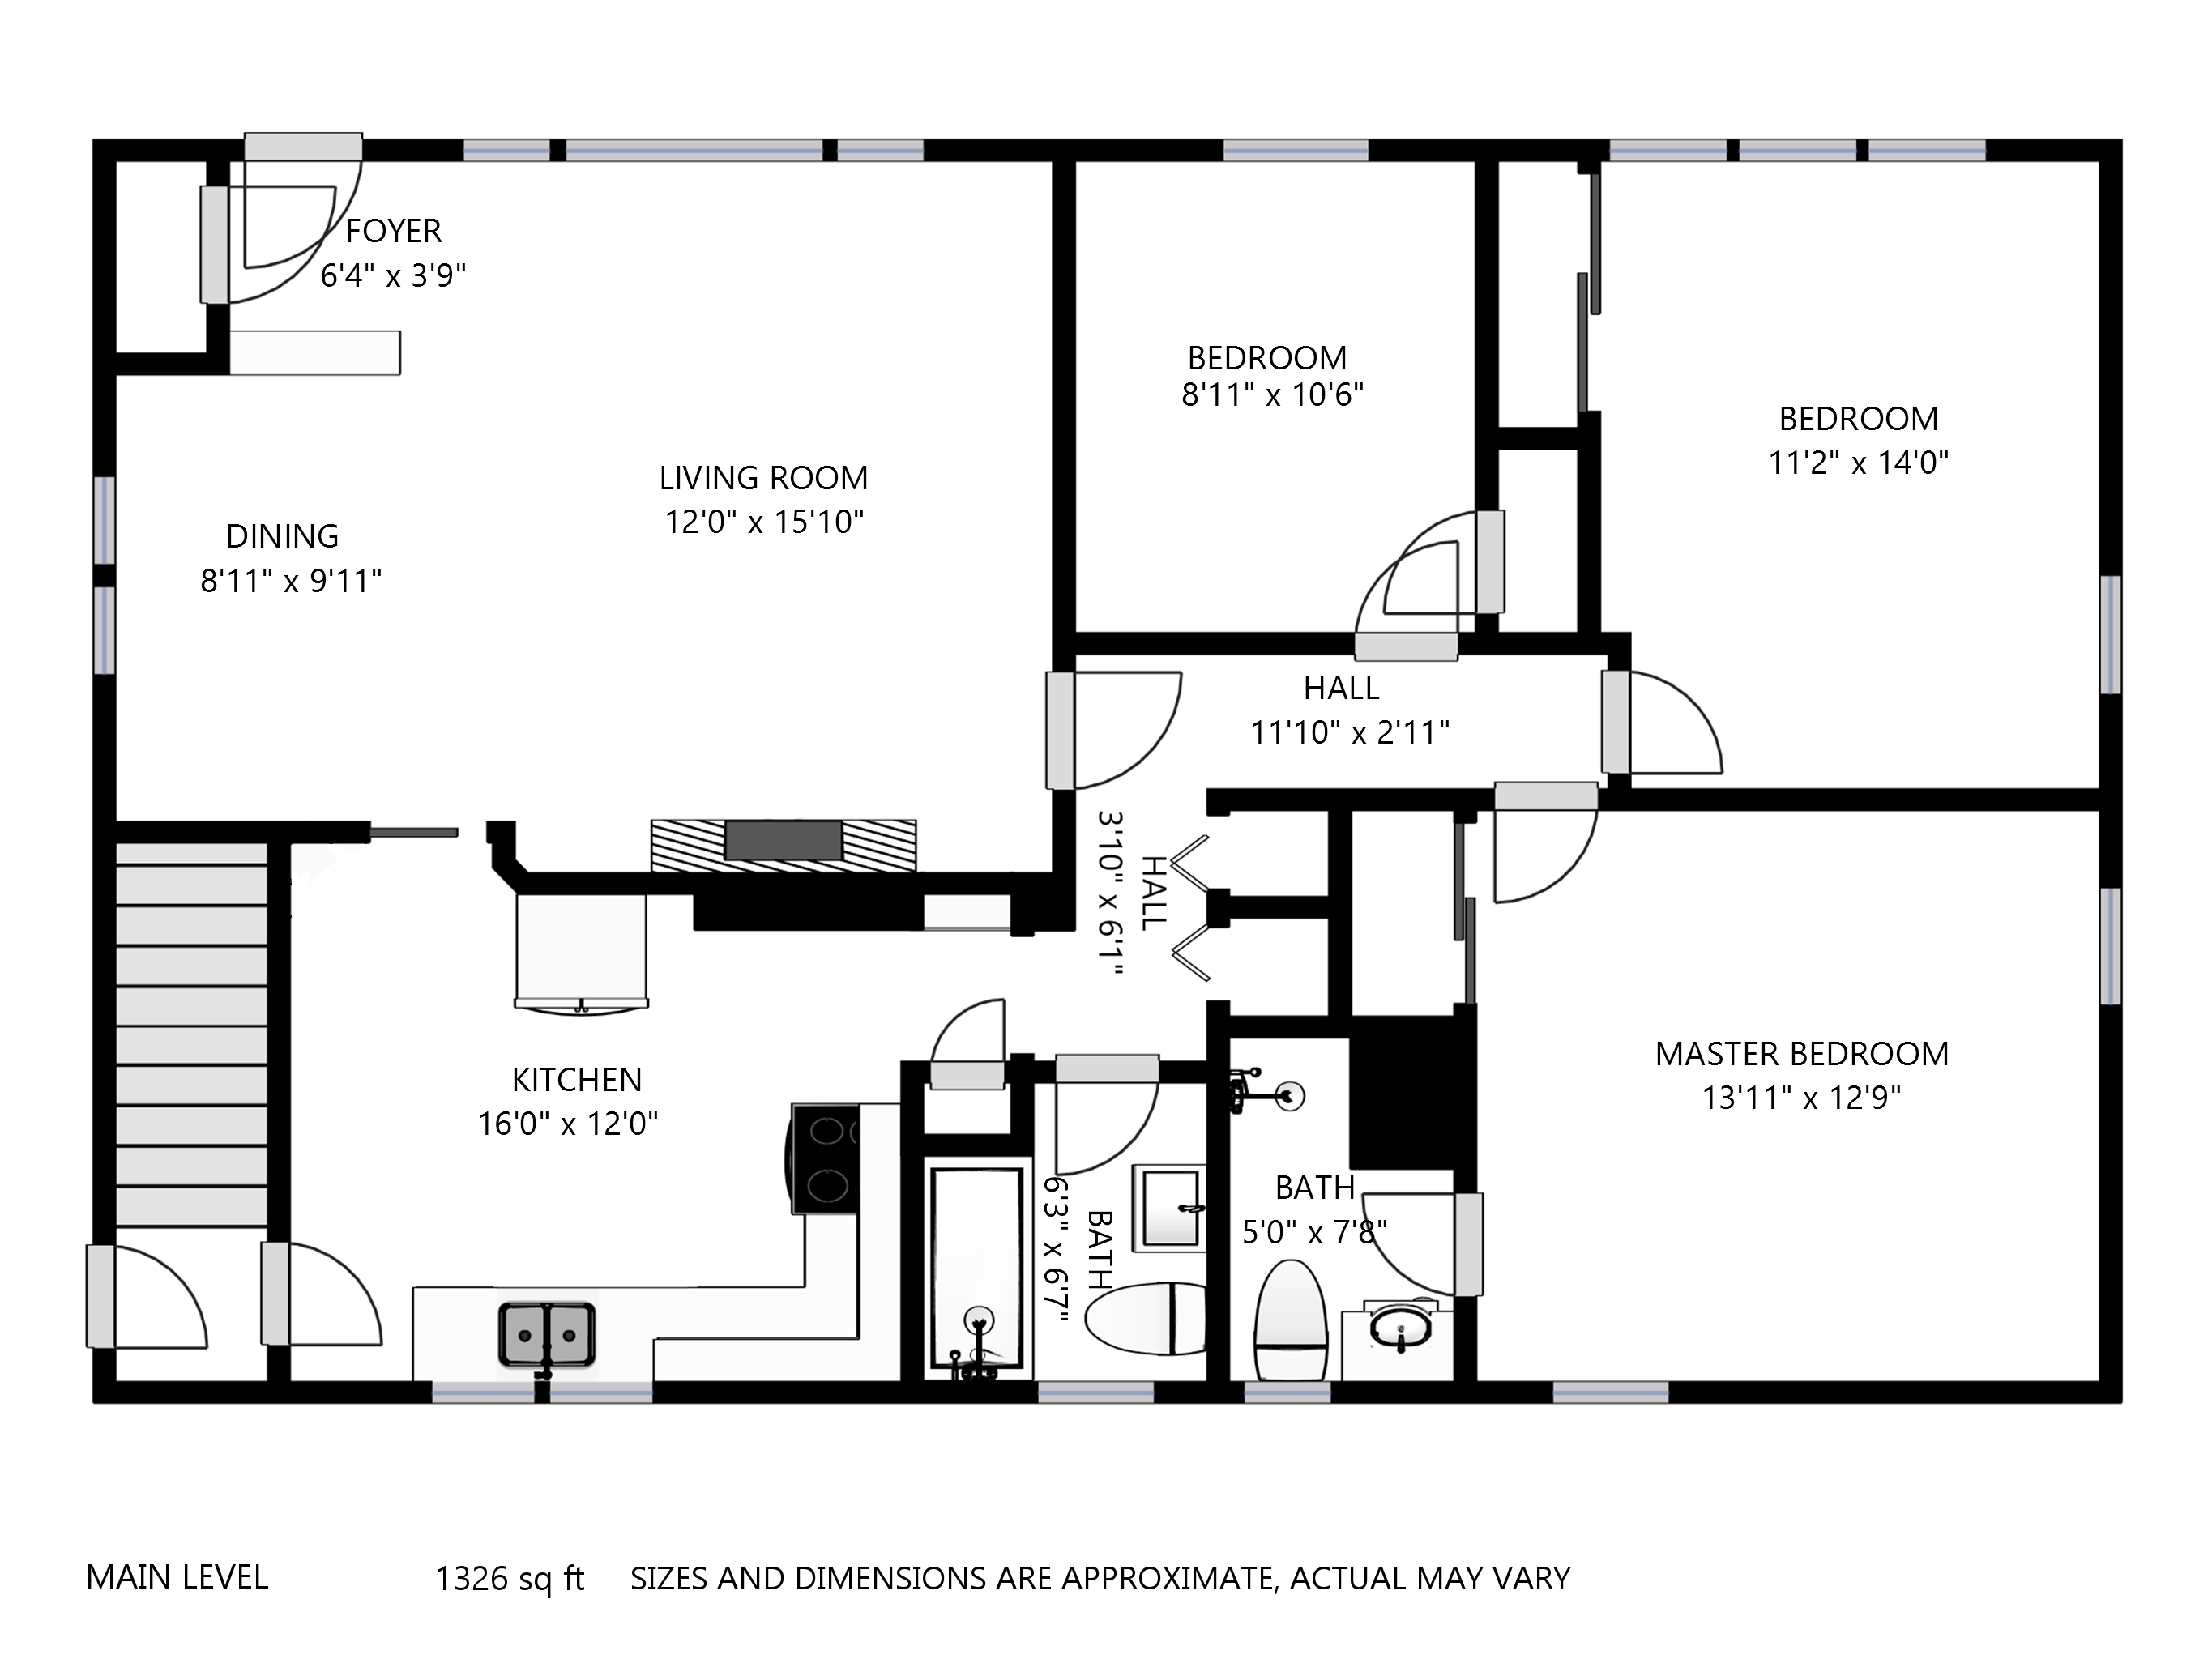 Bates house usc bates house floor plan usc house free for Norman bates house floor plan